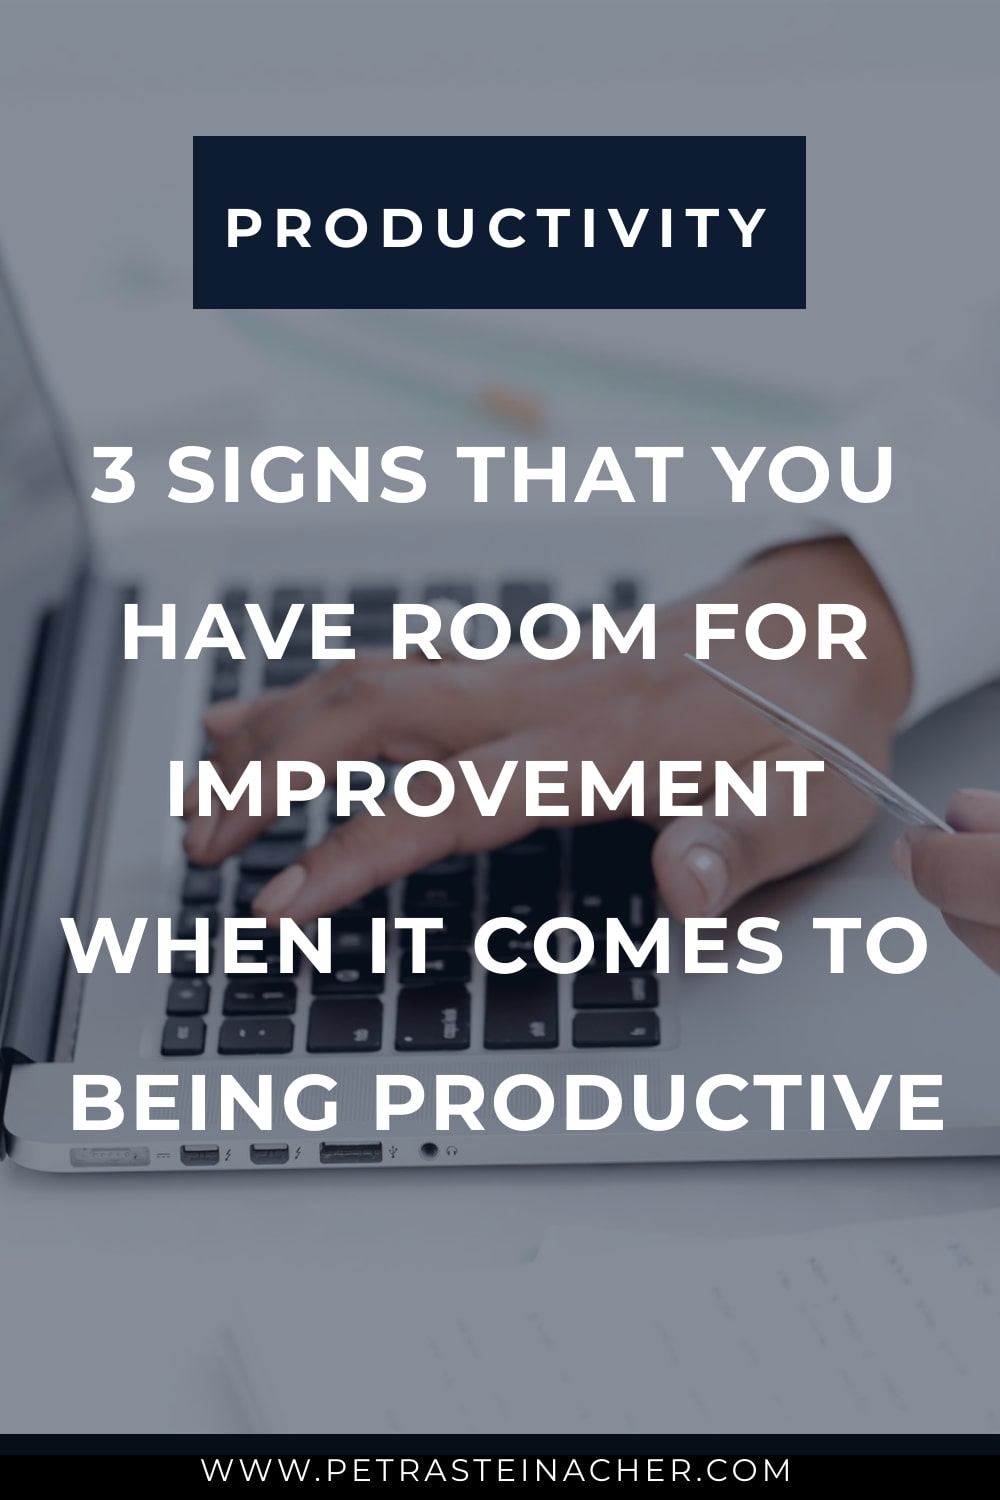 3 Signs That You Have Room For Improvement When It Comes To Being Productive